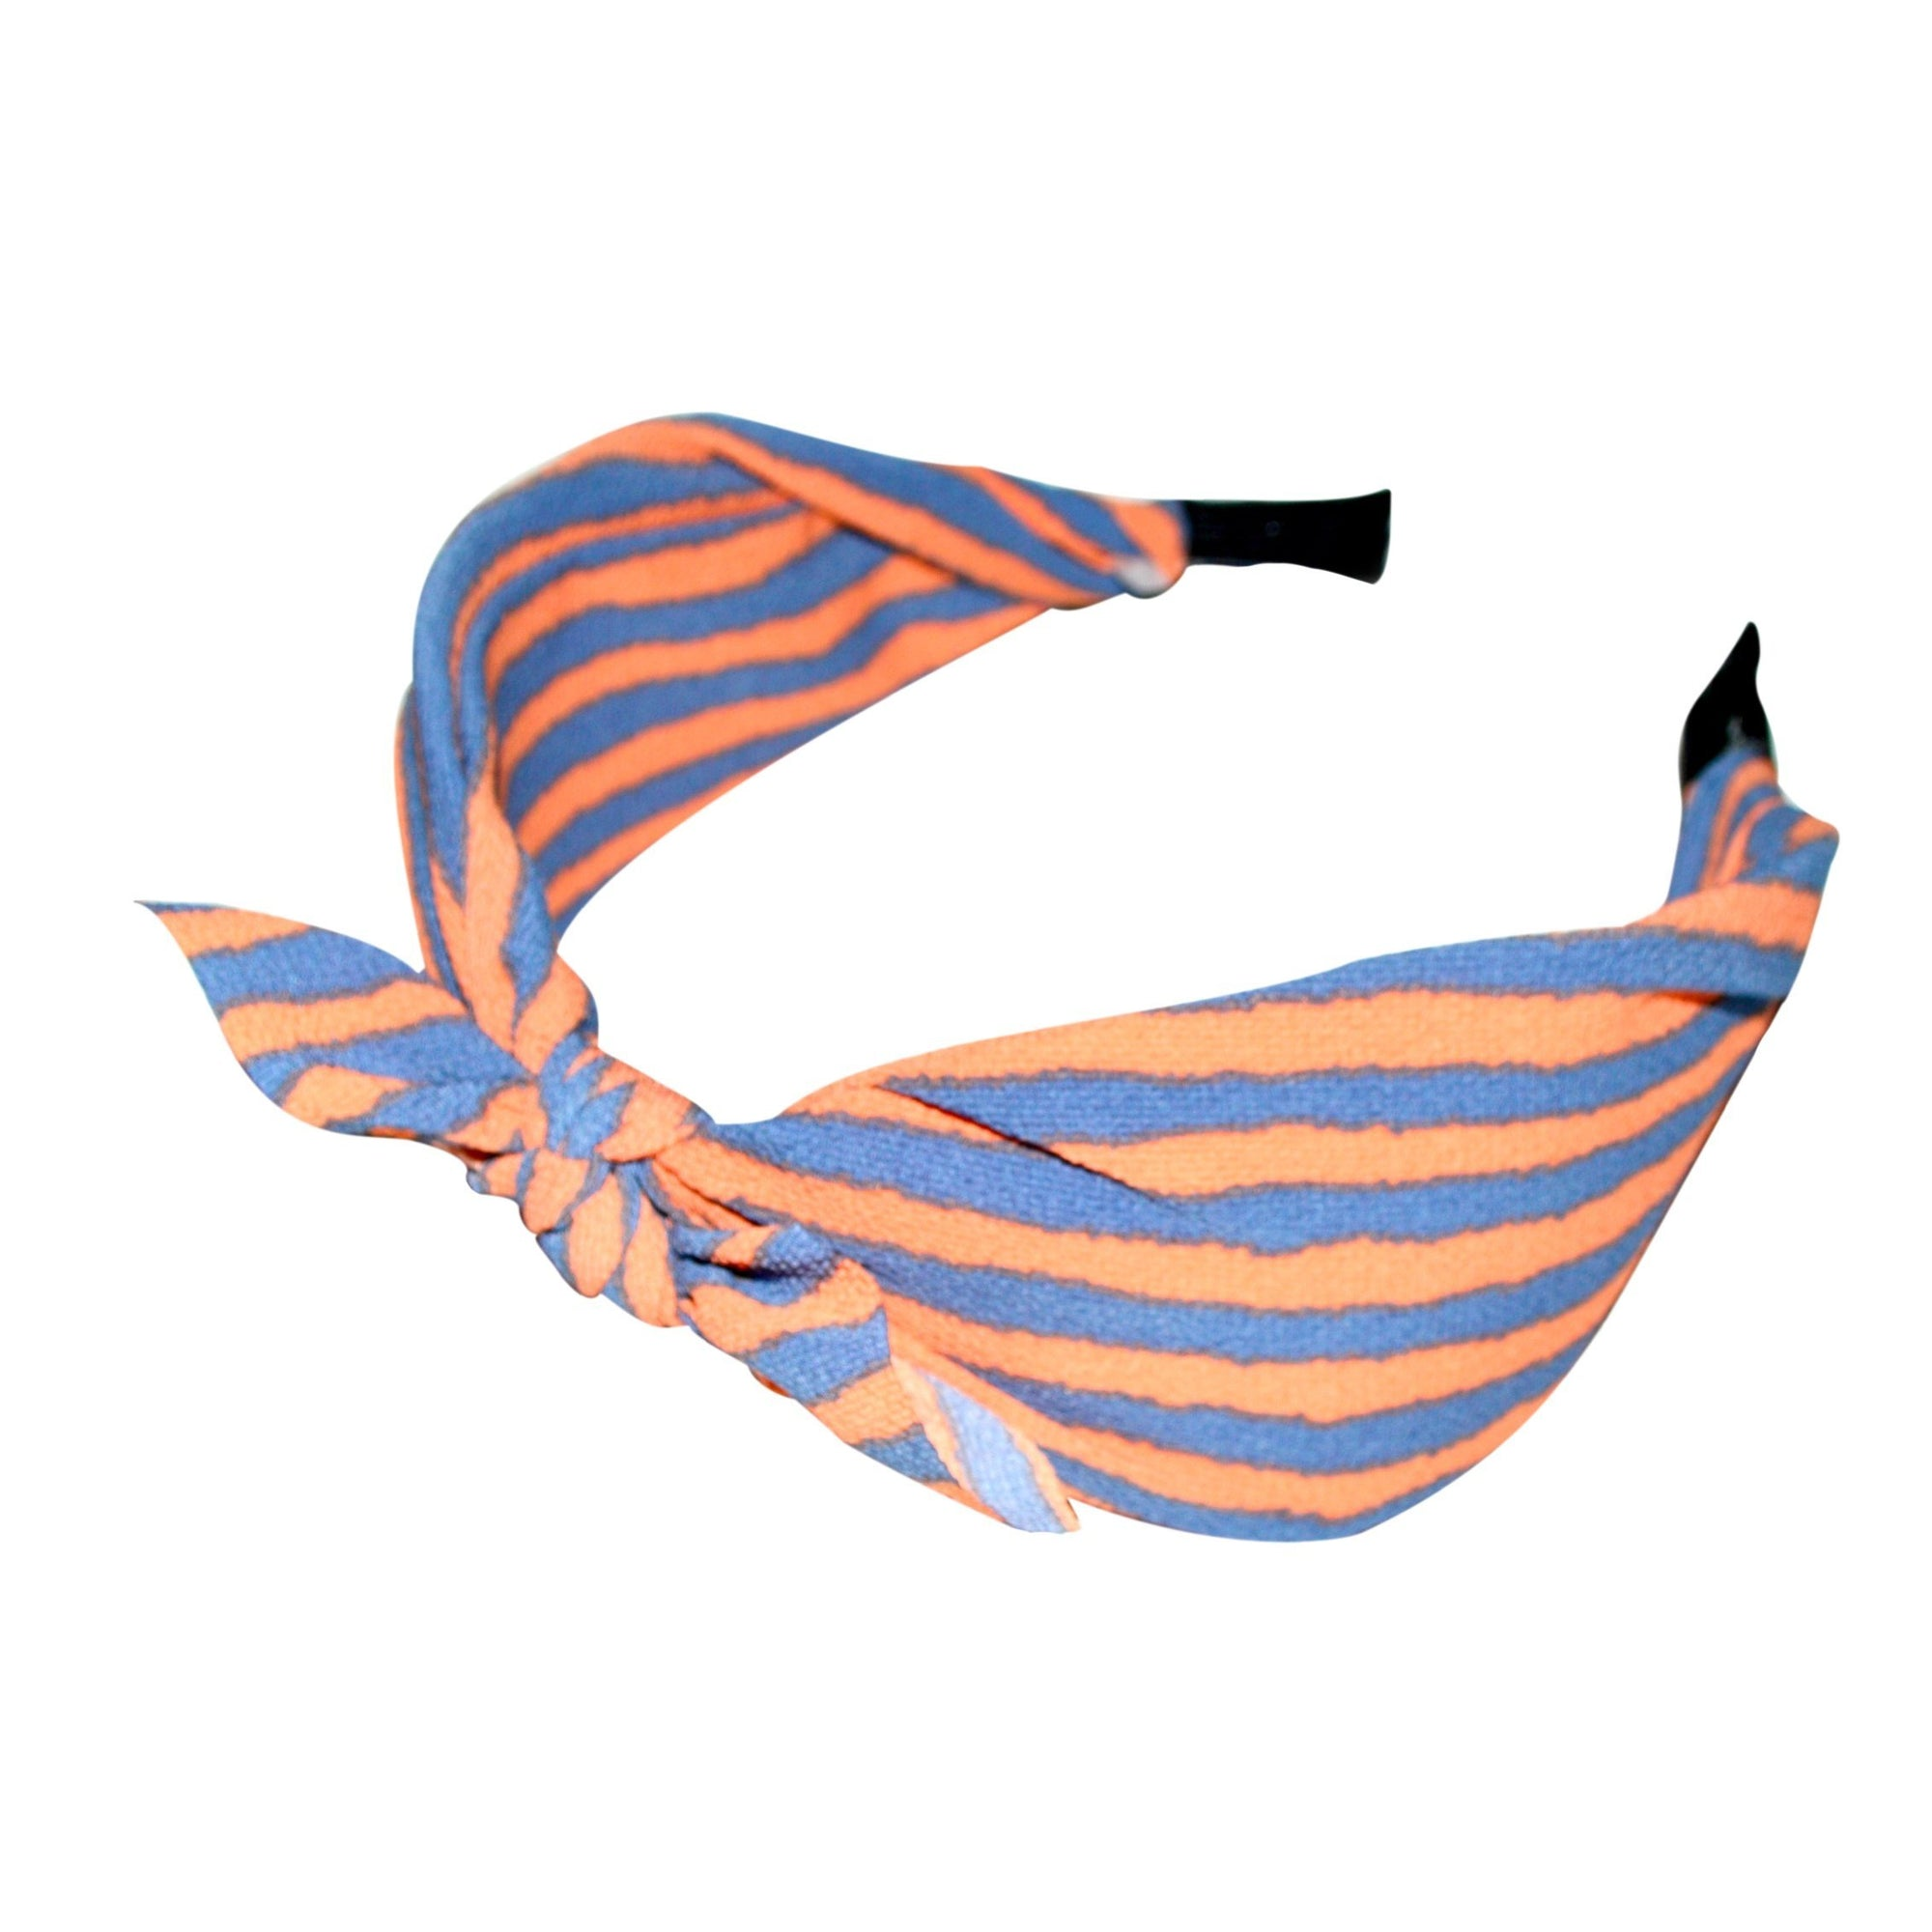 Handmade Striped Headband-Headbands-Tegen Accessories-Orange/Purple Stripe-Tegen Accessories